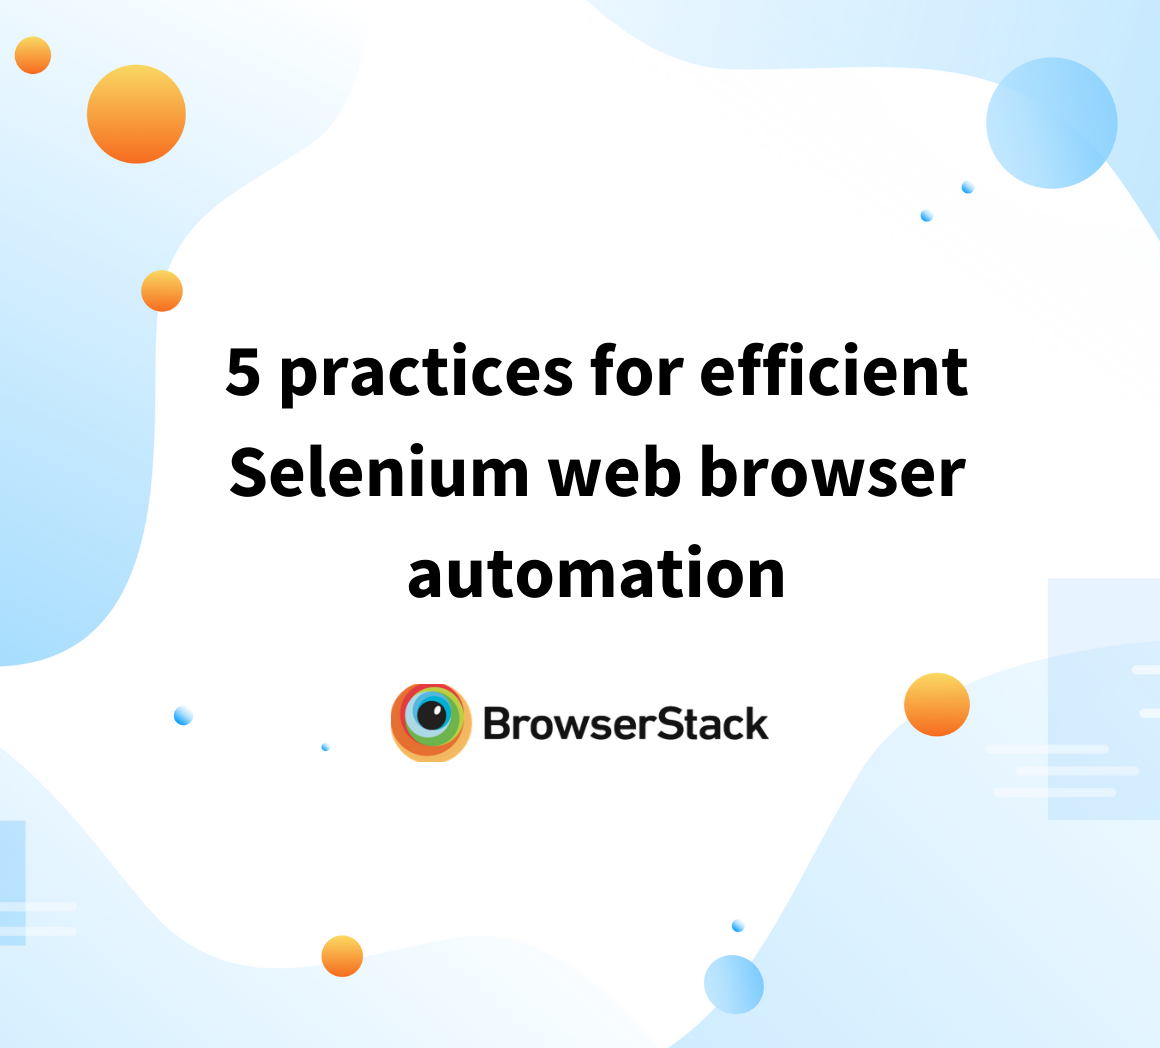 Best practices for Selenium web browser automation